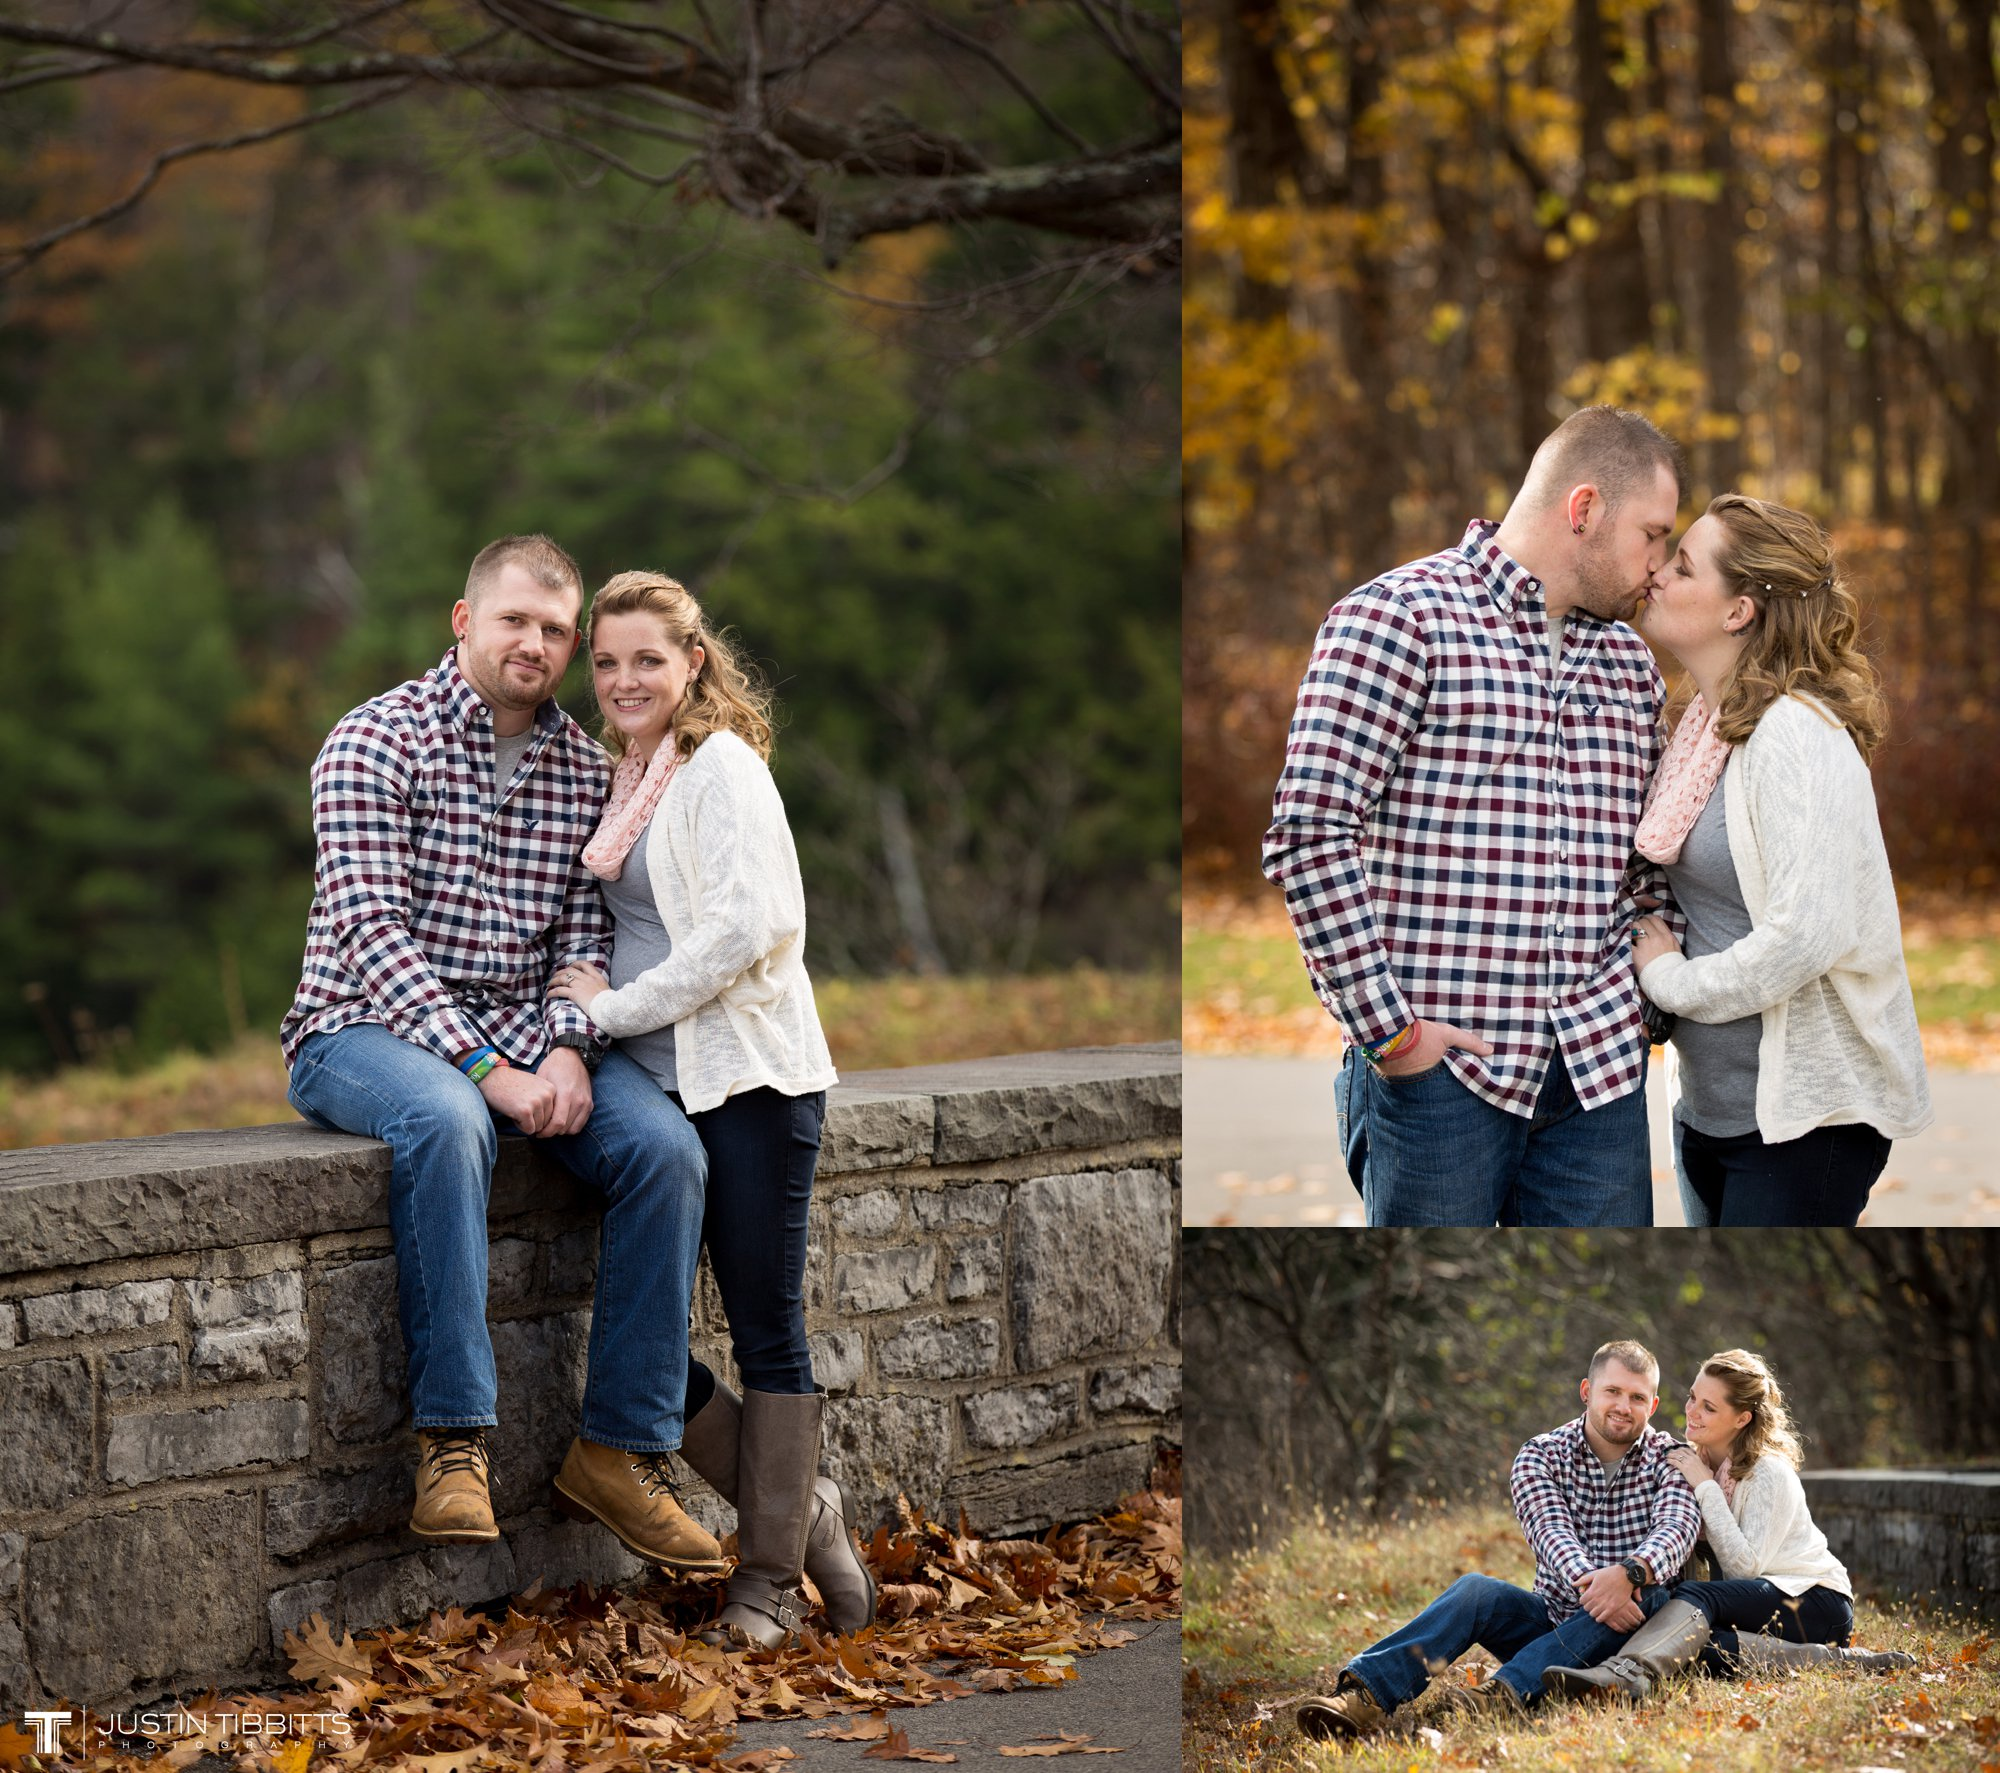 Justin Tibbitts Photography Ashlee and Steves Thatcher Park, New York Engagement Shoot-13